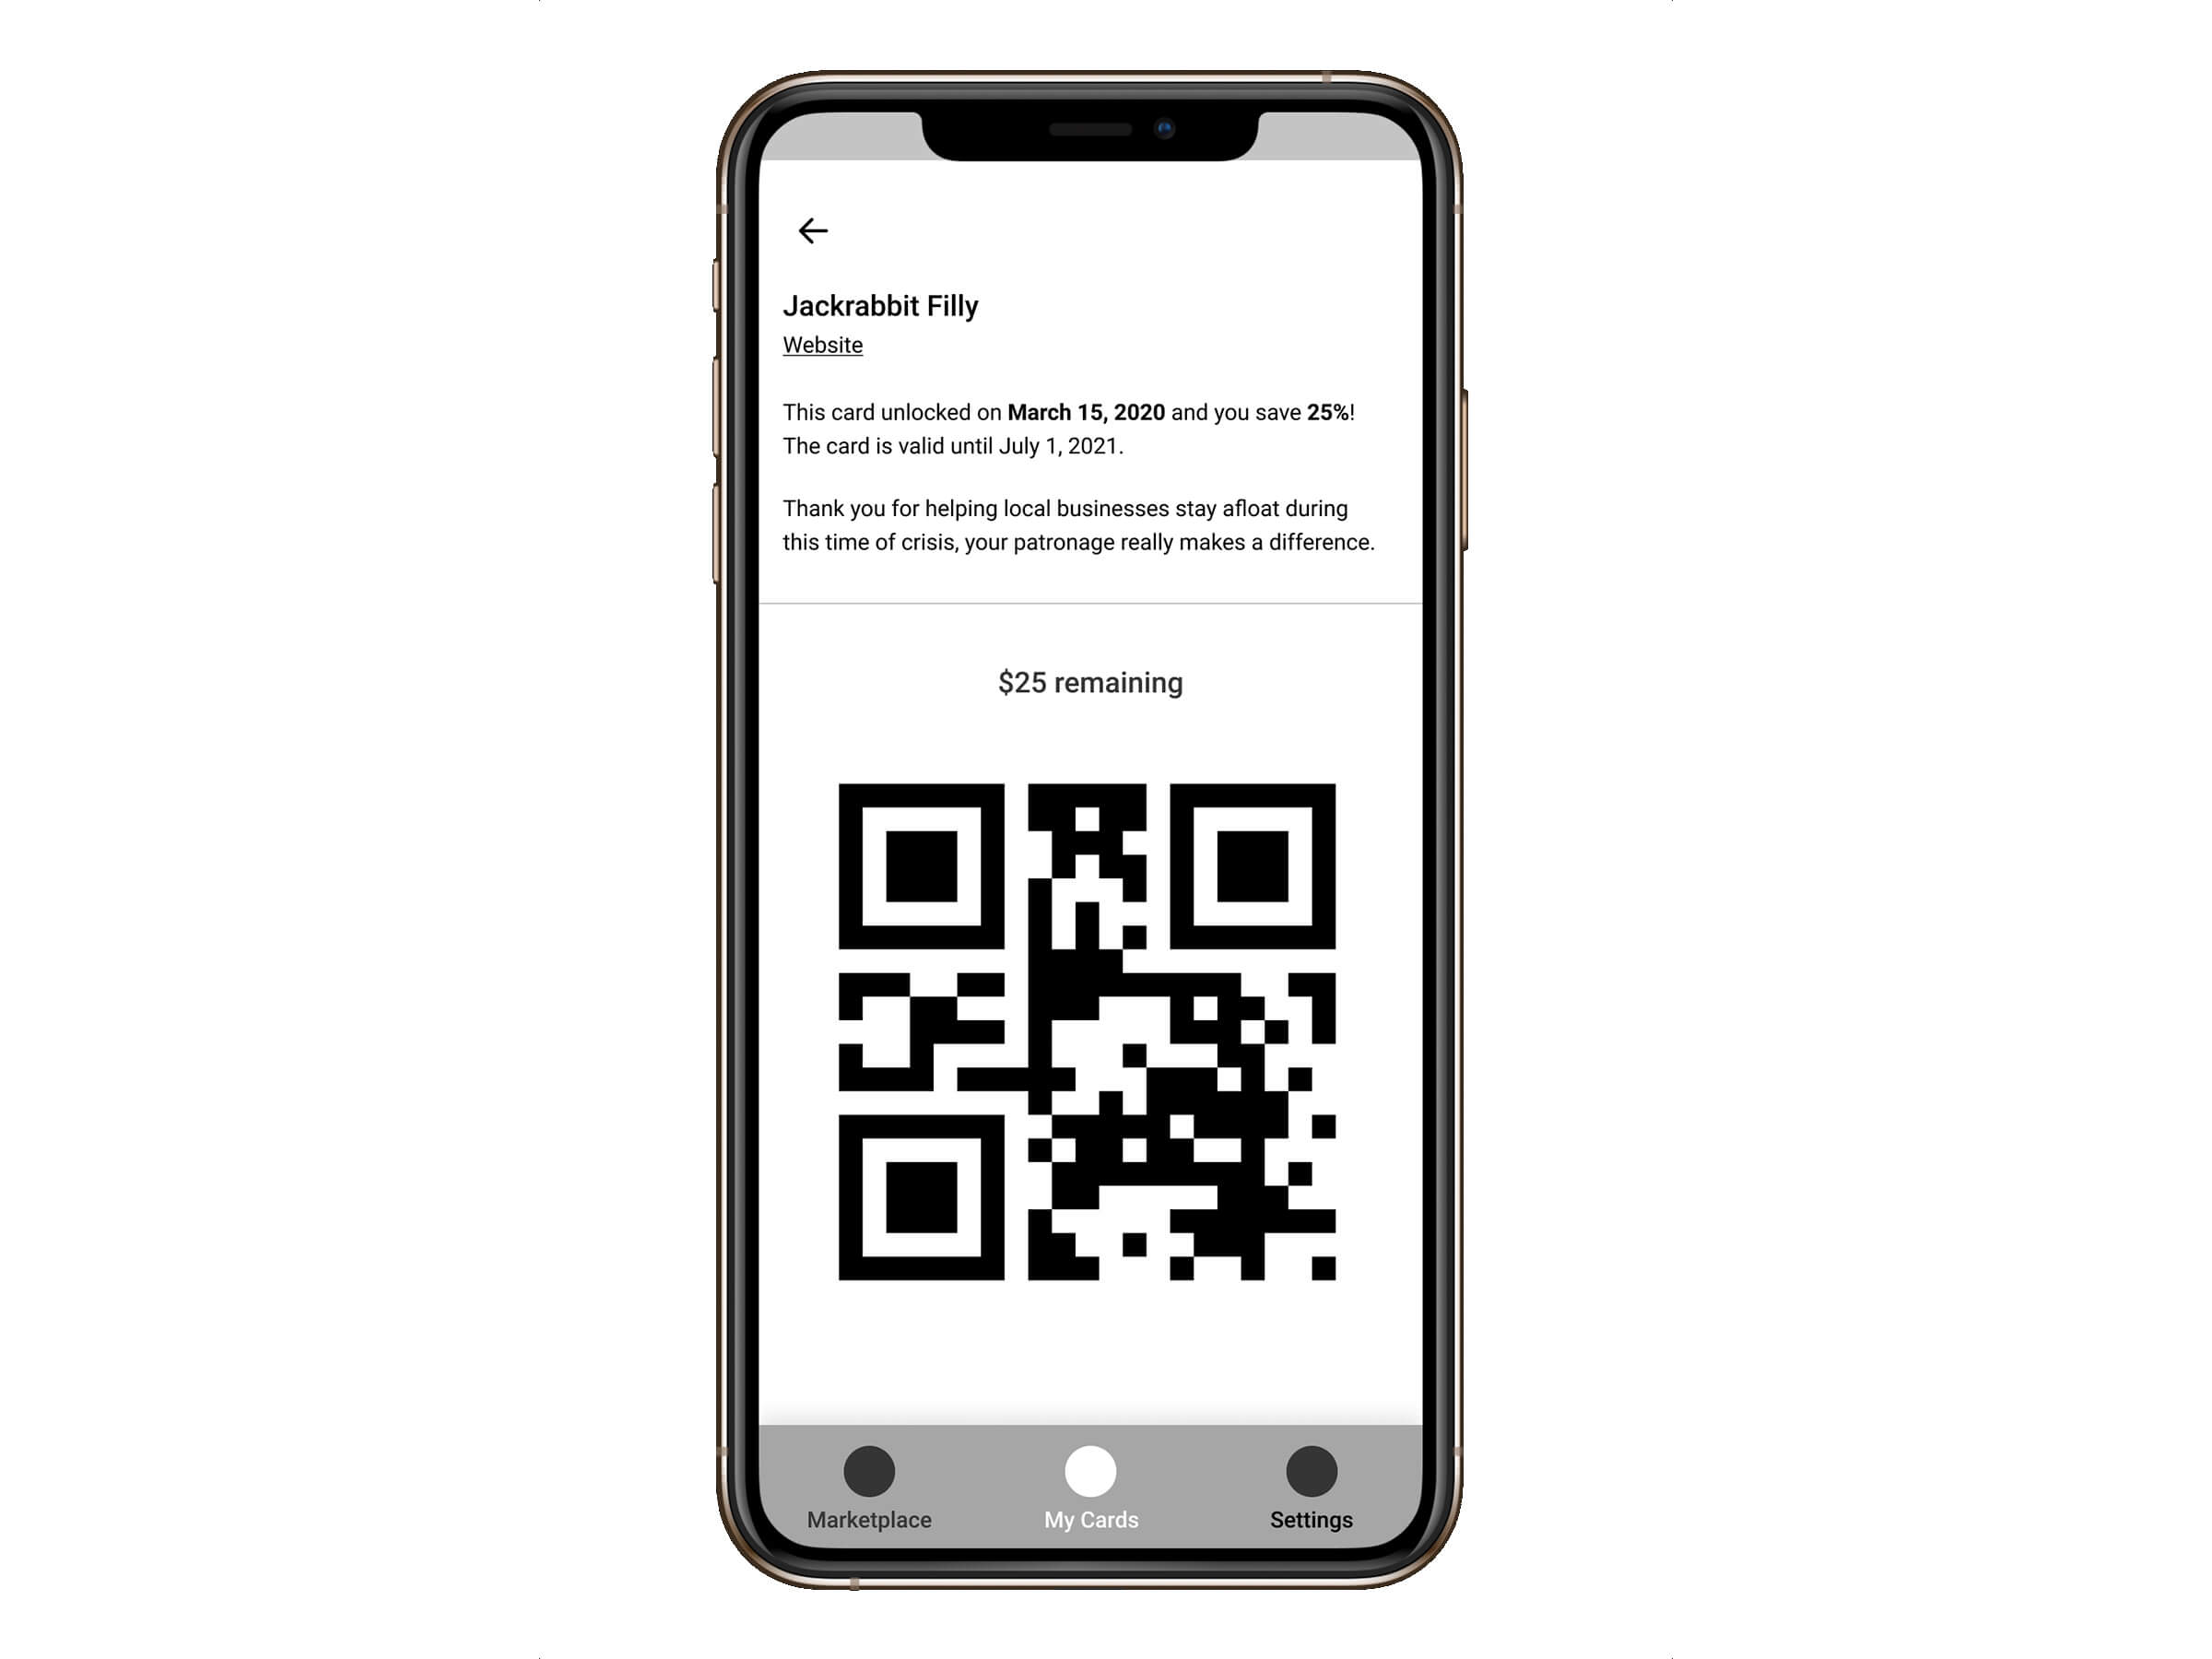 Early stage wireframes for the concept of redeeming the gift card via an iPhone app with a QR code